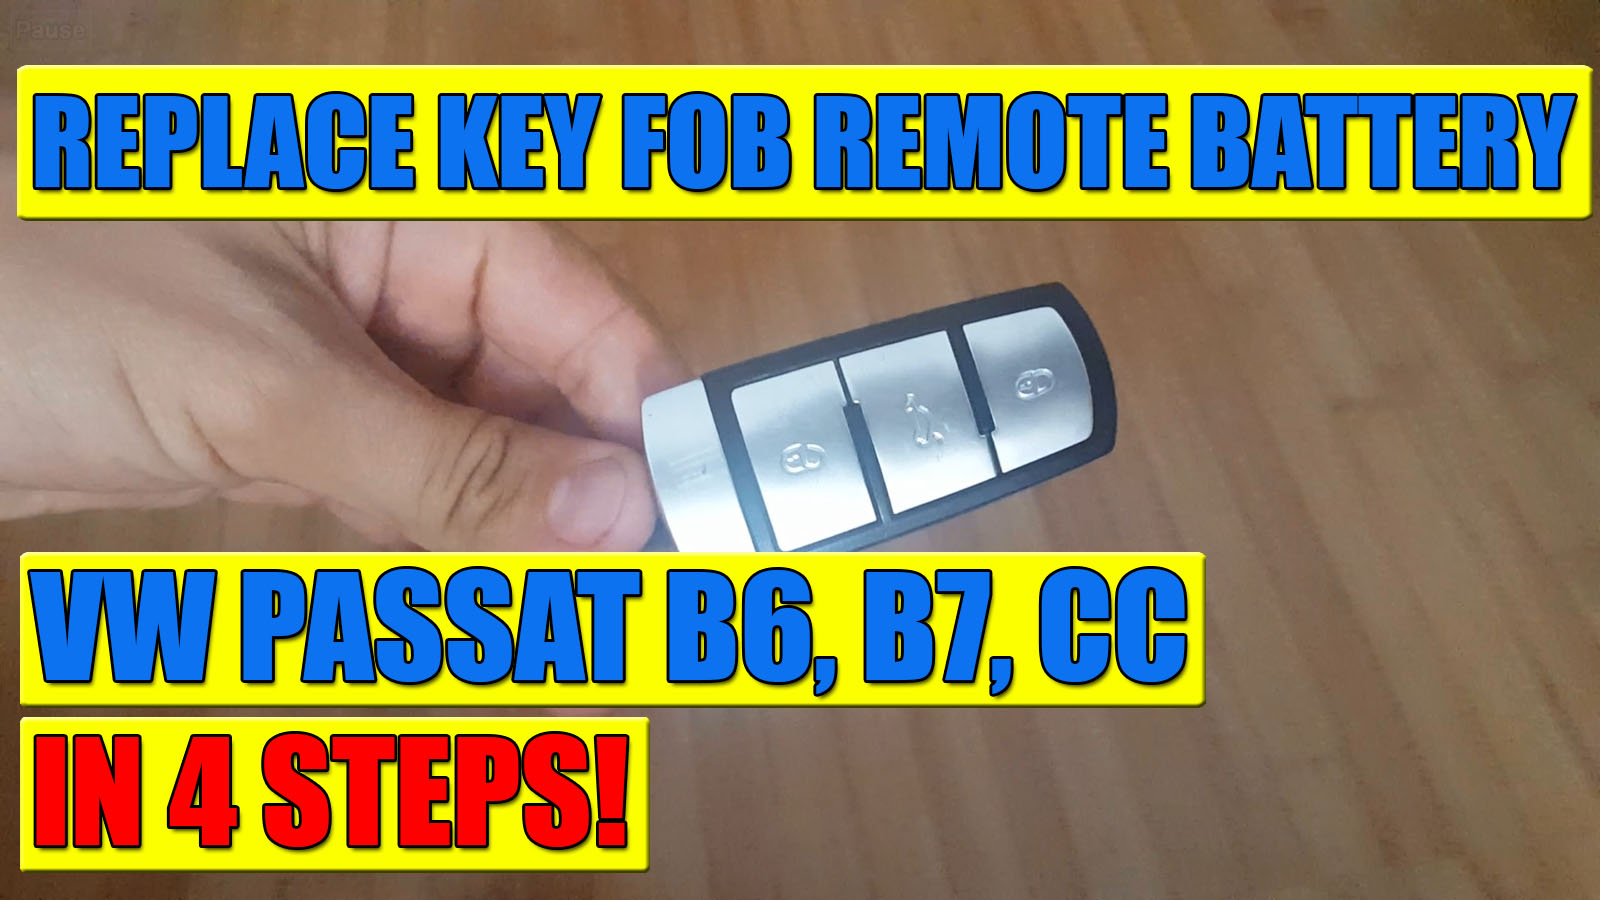 how to replace vw passat b6 b7 cc kessy key remote battery video. Black Bedroom Furniture Sets. Home Design Ideas